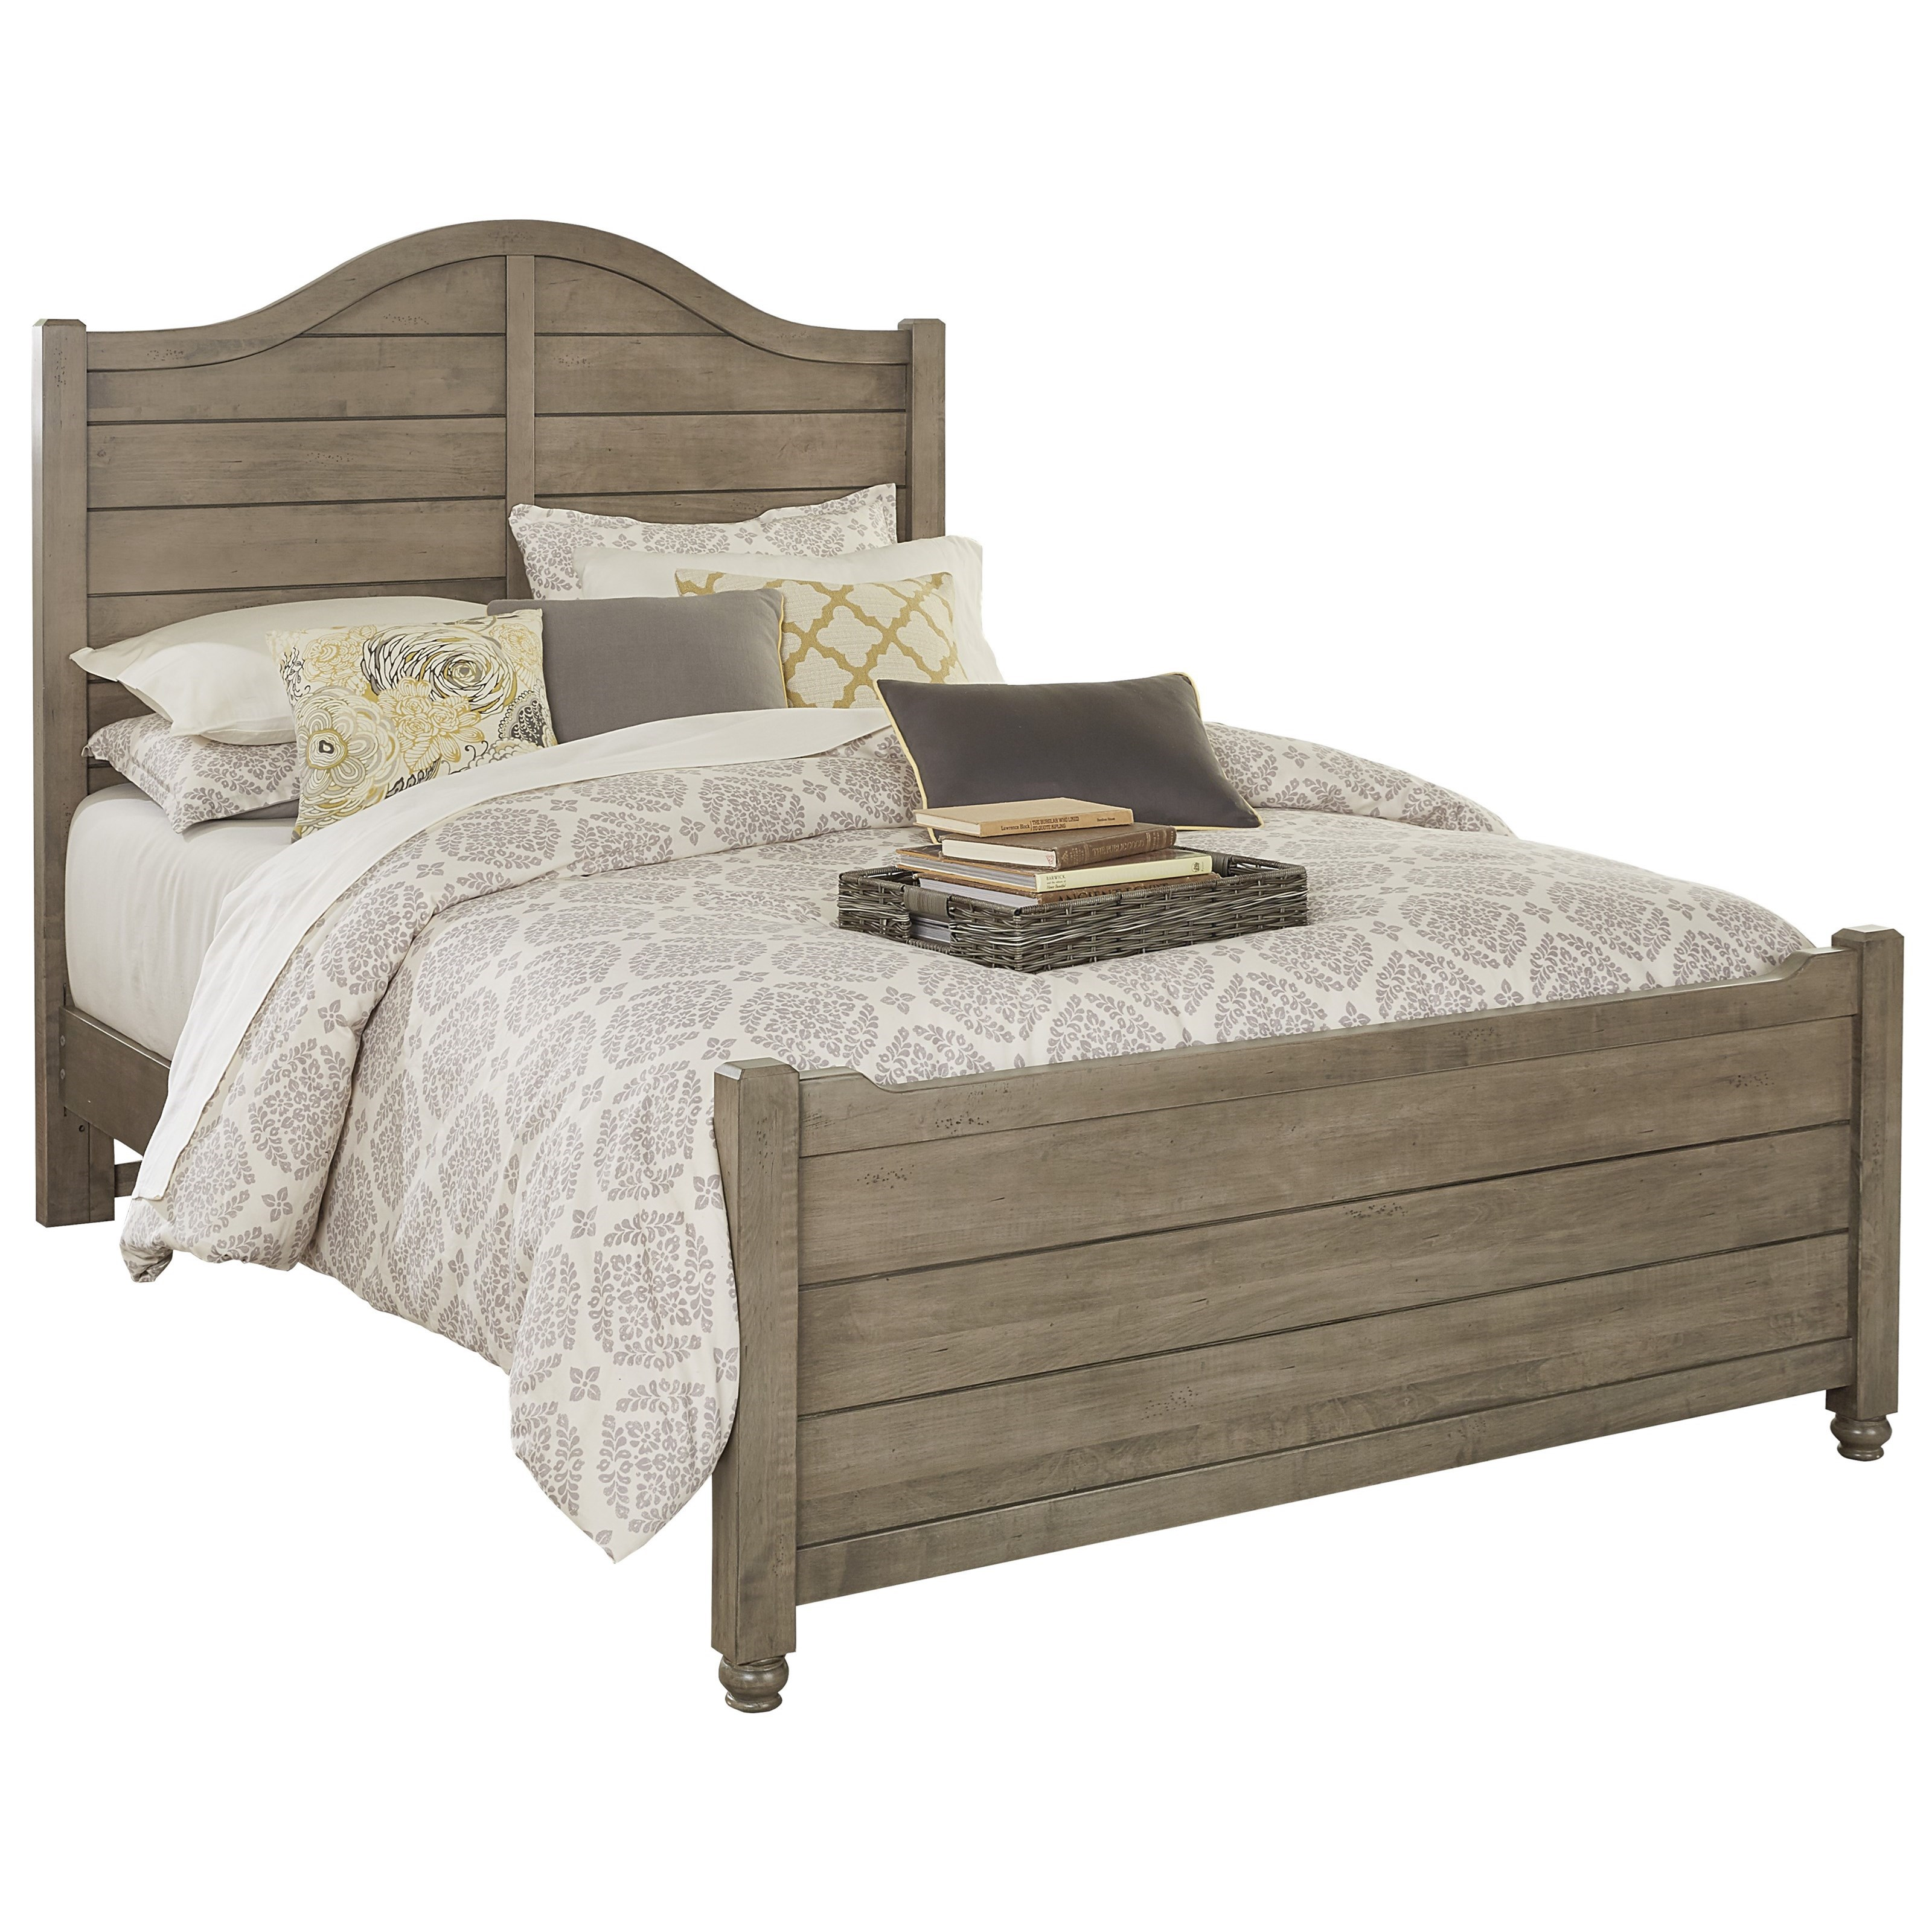 Vaughan Bassett American Maple Full Shiplap Bed - Item Number: 401-449+994+911